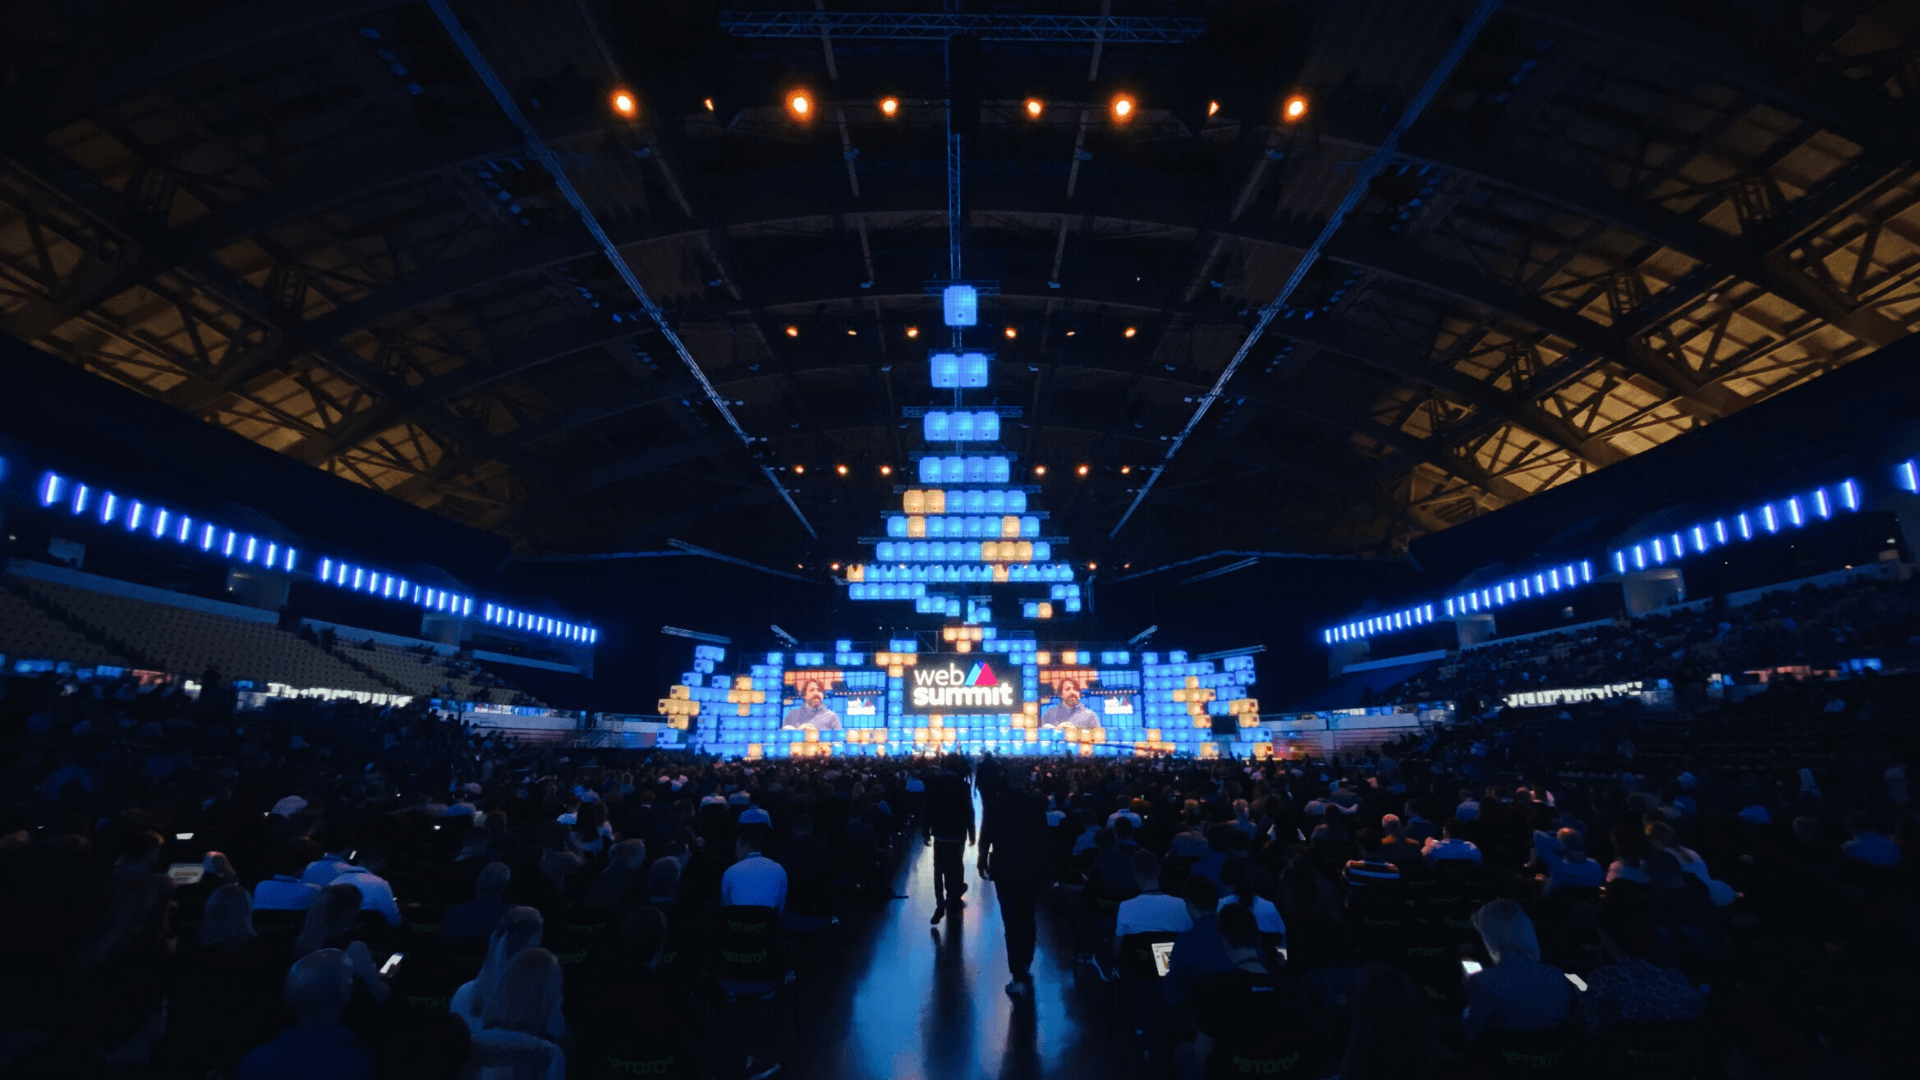 Web Summit 2019: Our key take aways (Part 2)